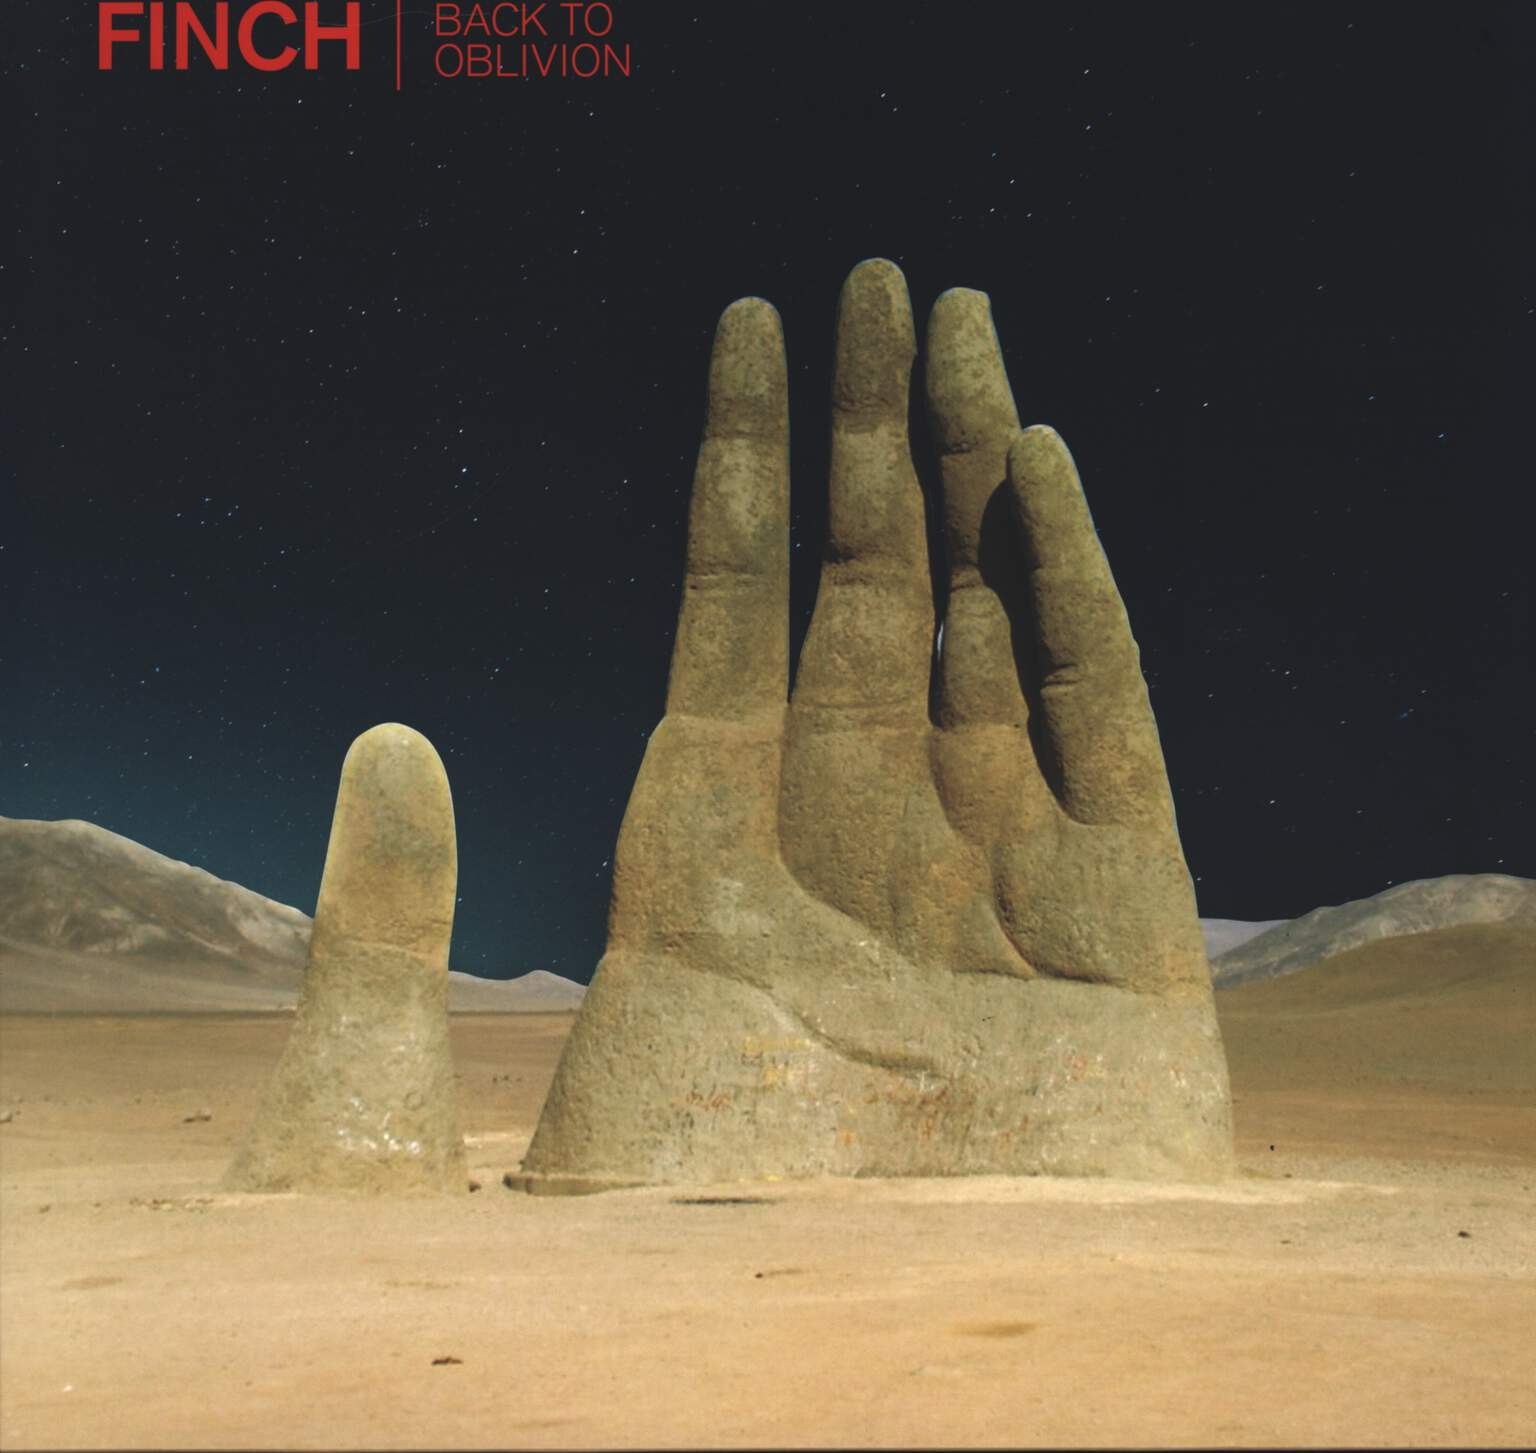 Finch: Back To Oblivion, LP (Vinyl)